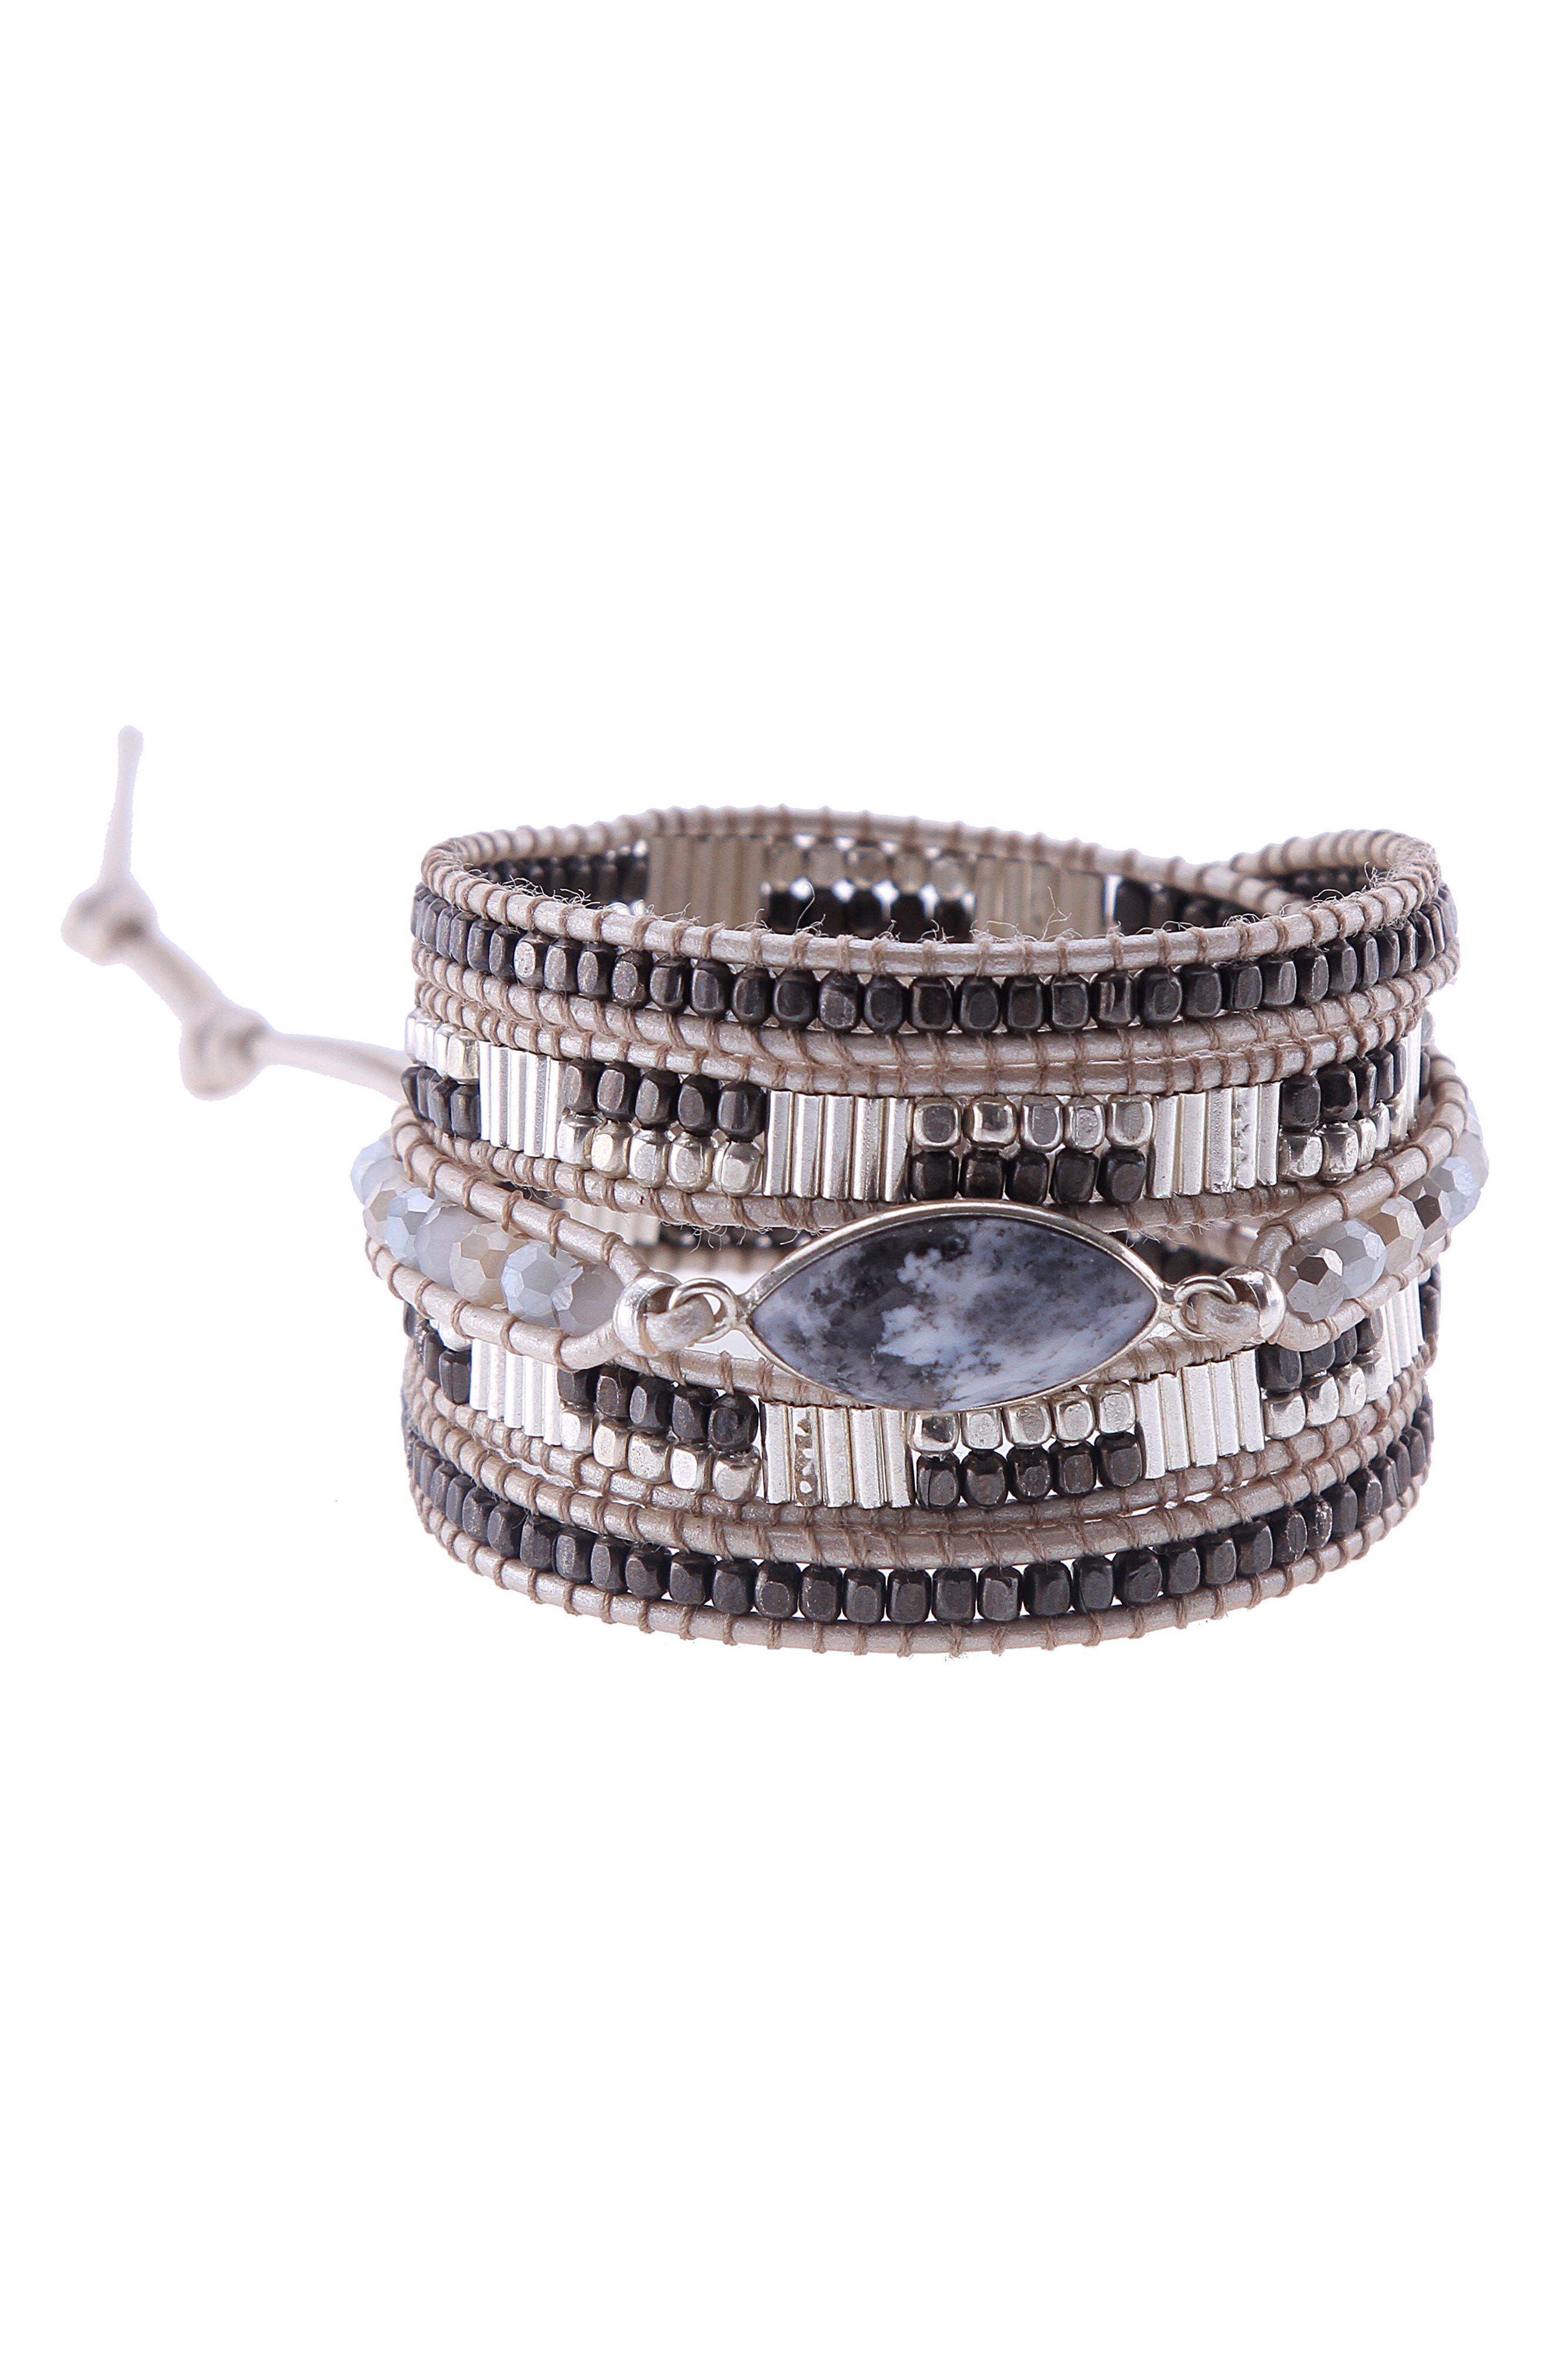 Beaded Agate Wrap Bracelet,                             Main thumbnail 1, color,                             100